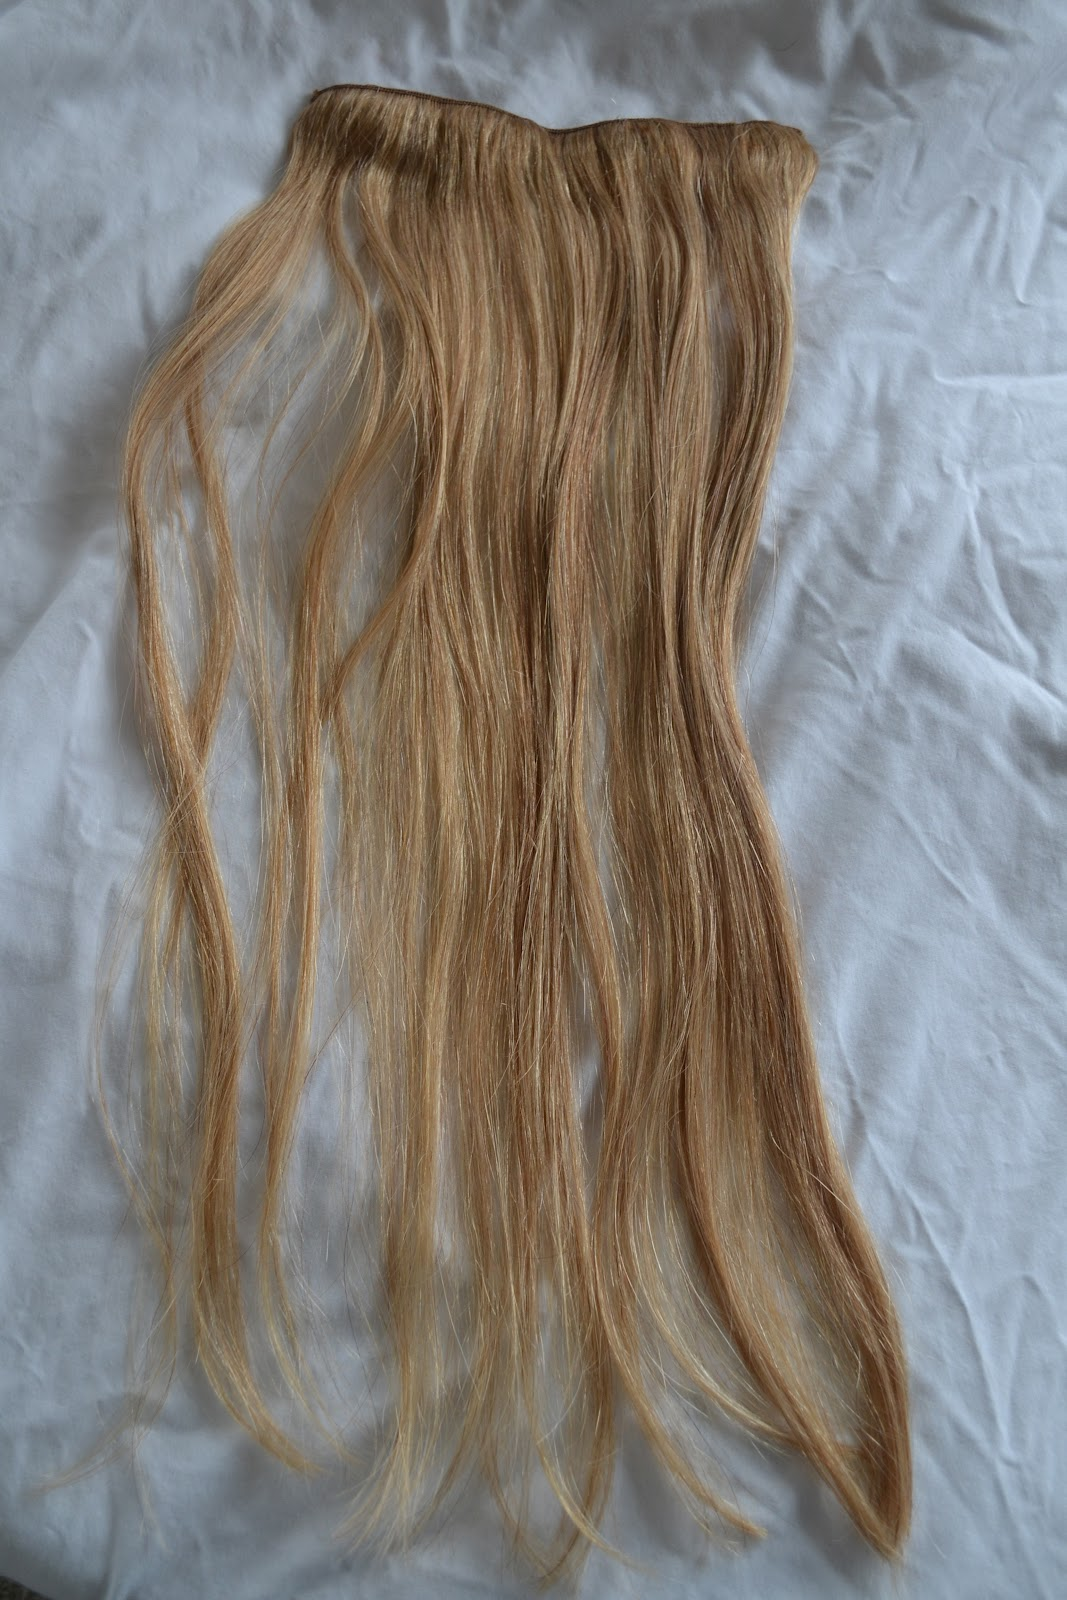 A noble beauty luxy hair extension review 160g 18 dirty blonde luxy hair extension review 160g 18 dirty blonde pmusecretfo Choice Image